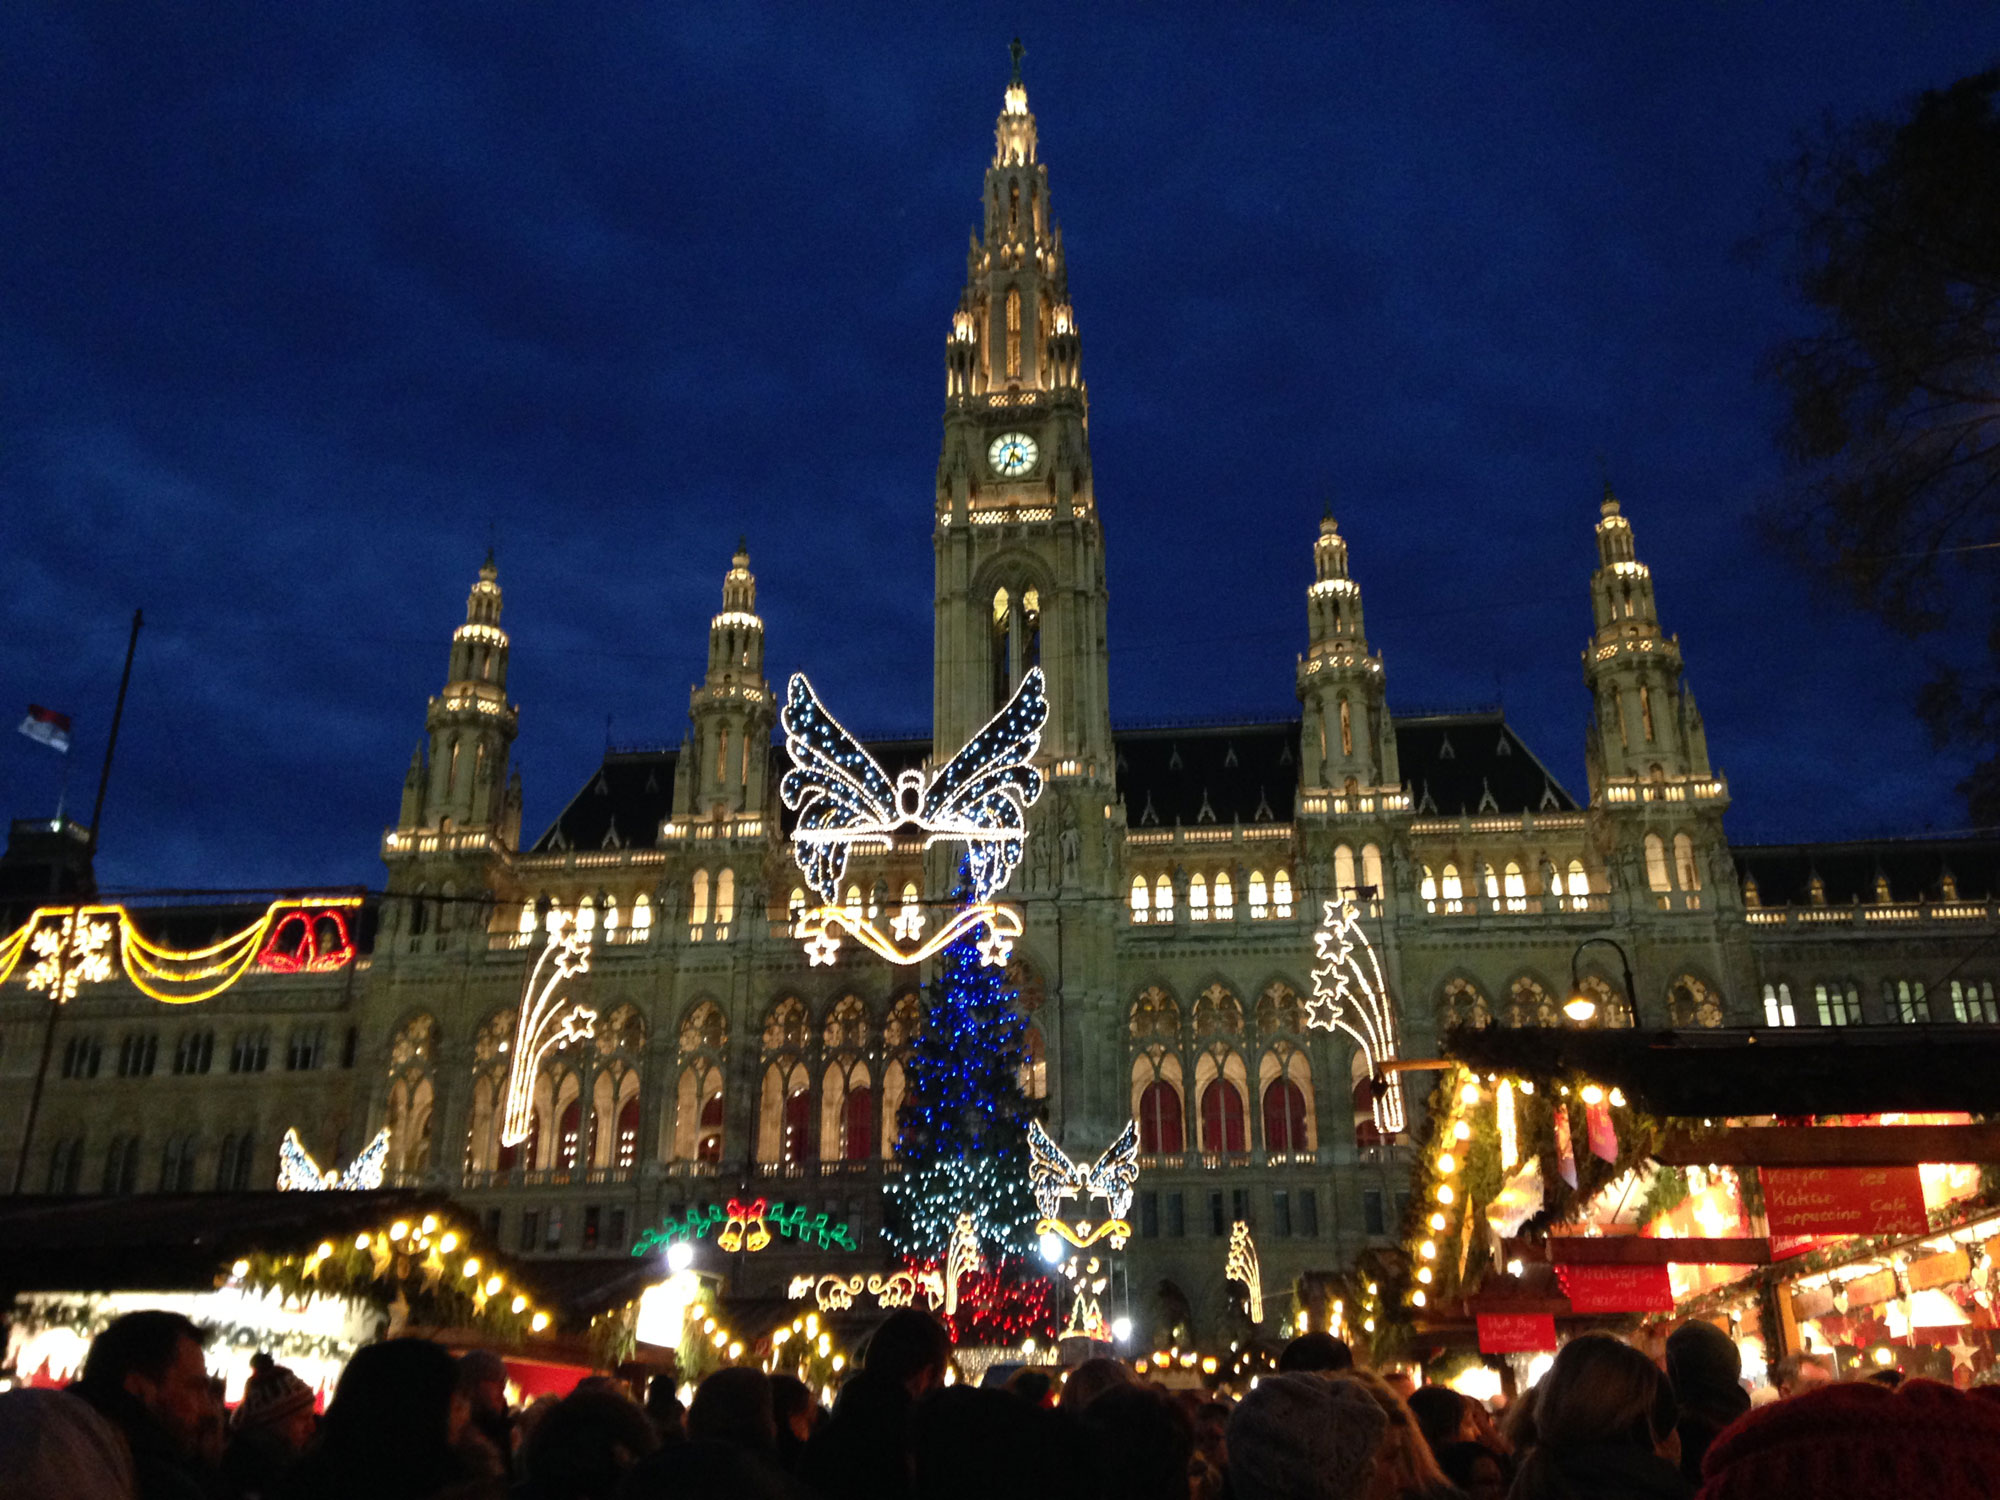 Decorations and lights at the Christmas market in Vienna, Austria, on Nov. 28, 2015. 680 NEWS/Patricia D'Cunha.